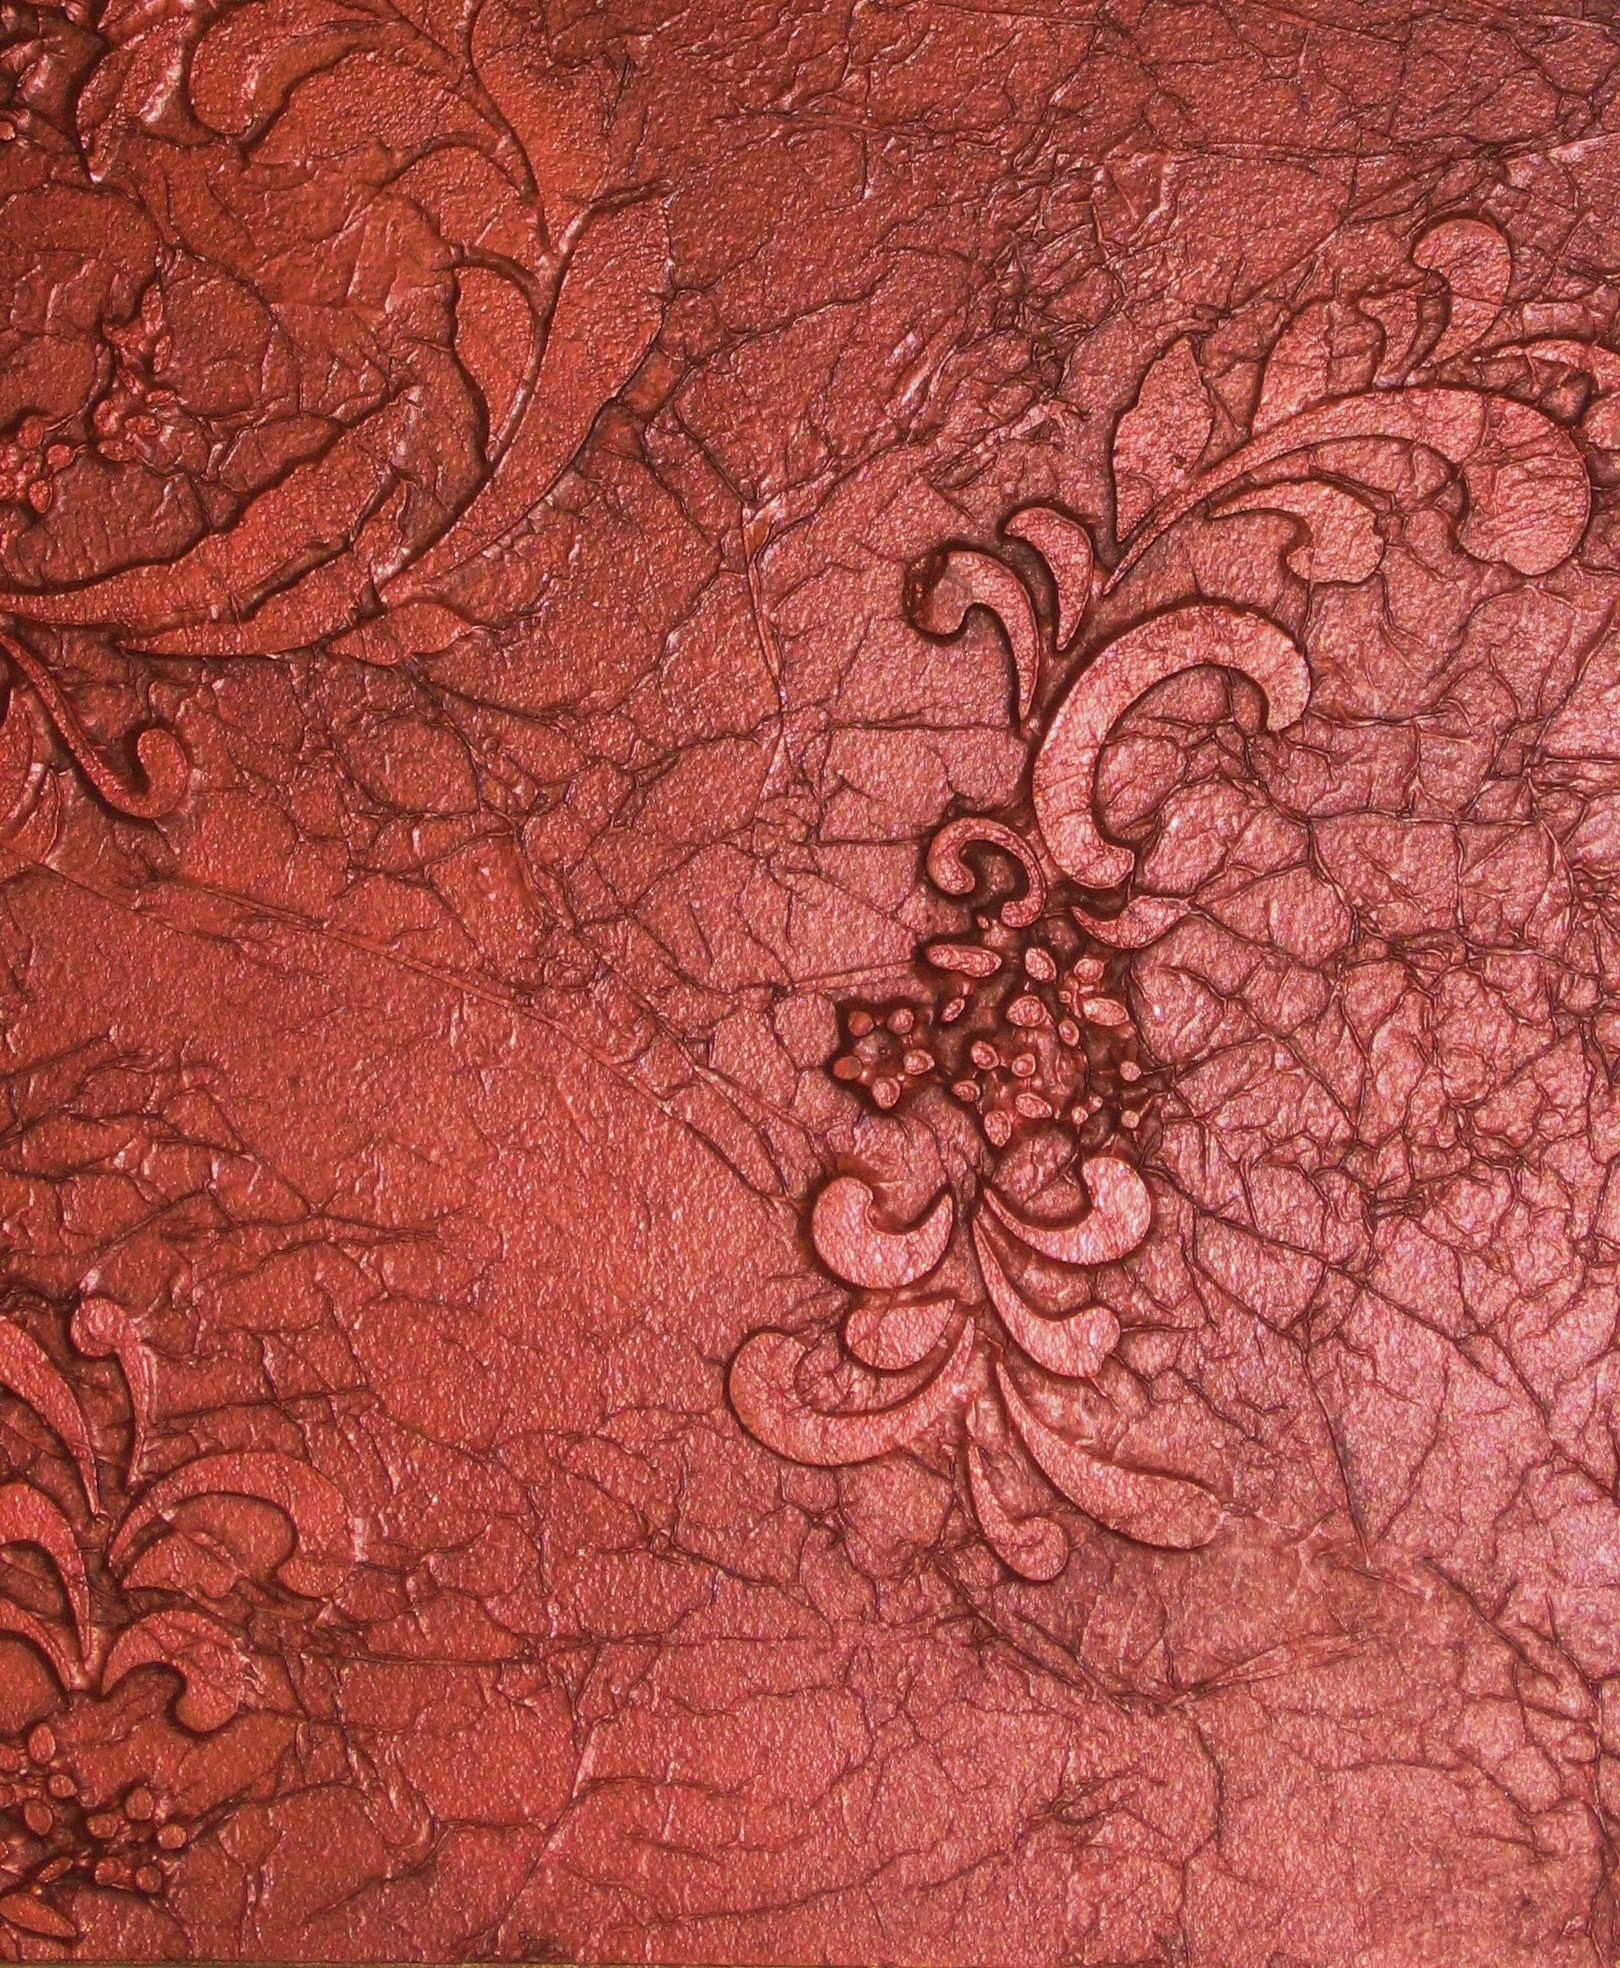 Here is another tissue paper sample done with a copper glaze 1620x1968